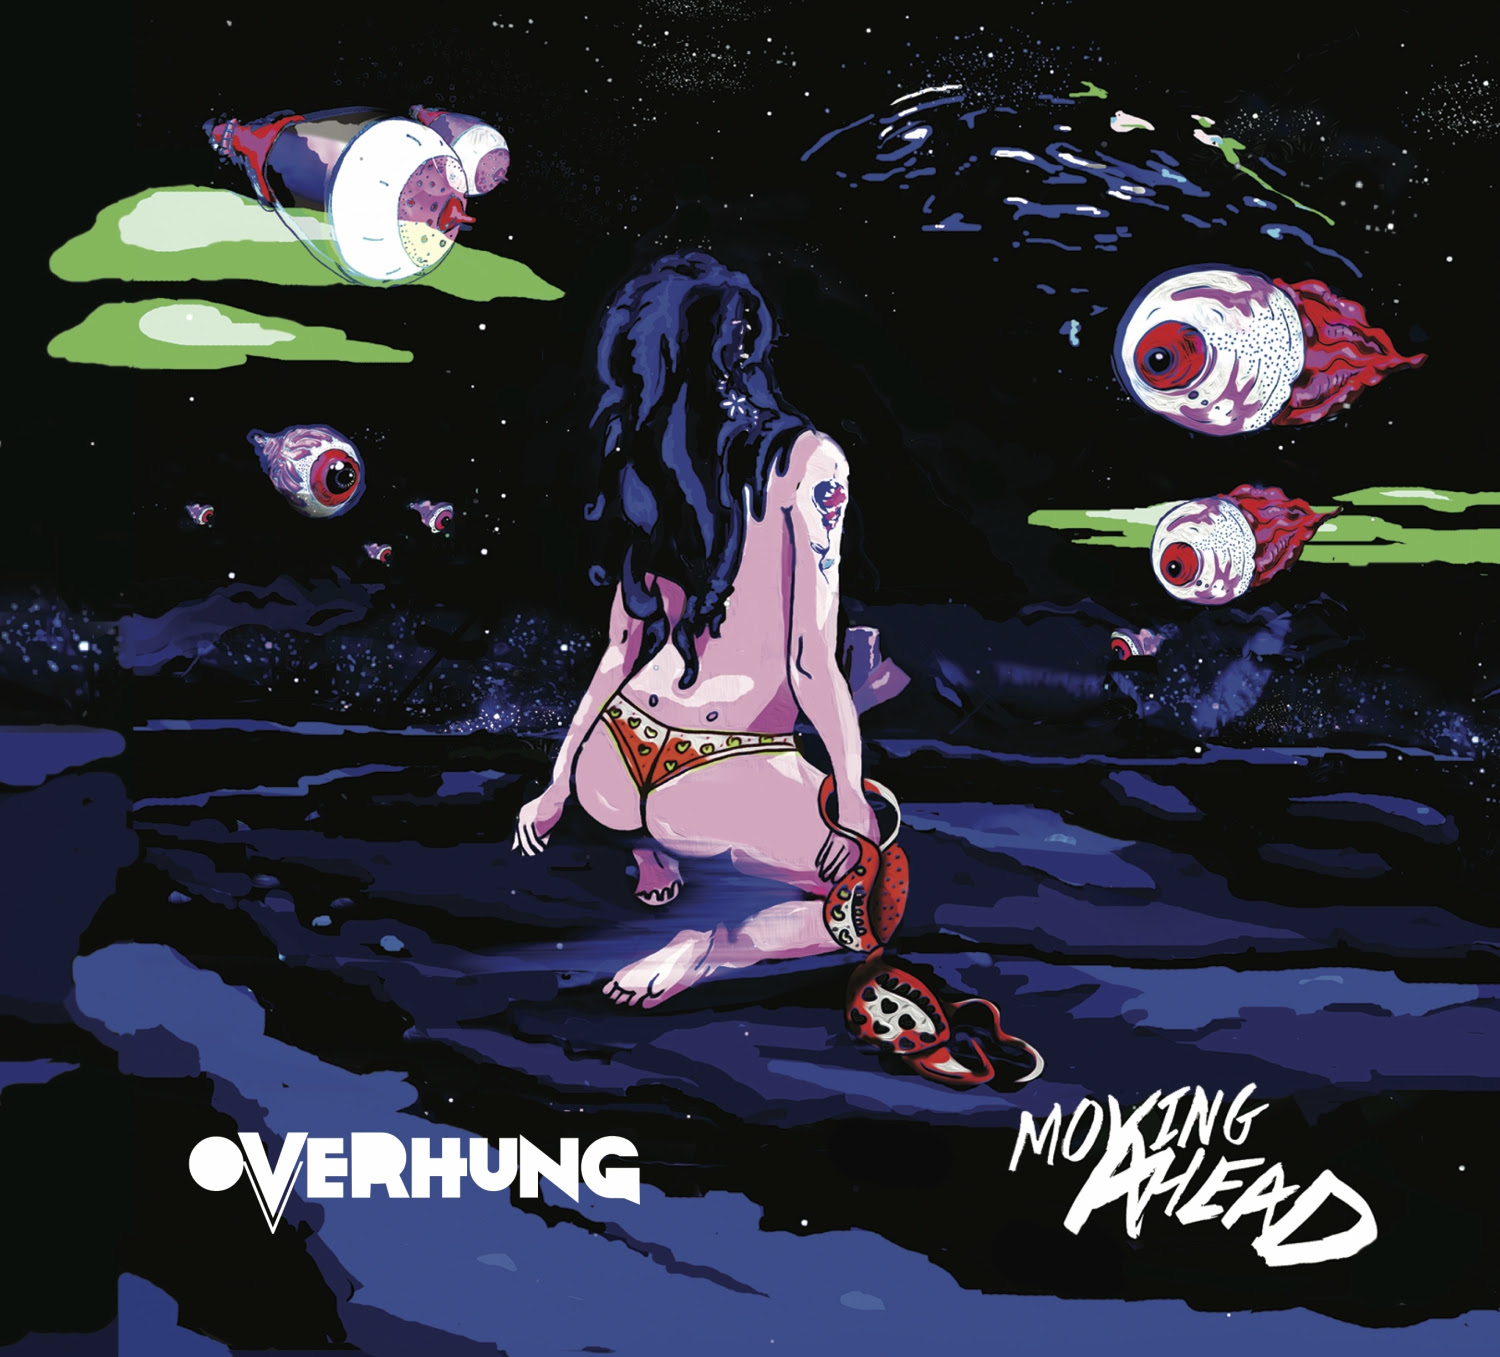 overhung moving ahead album cover